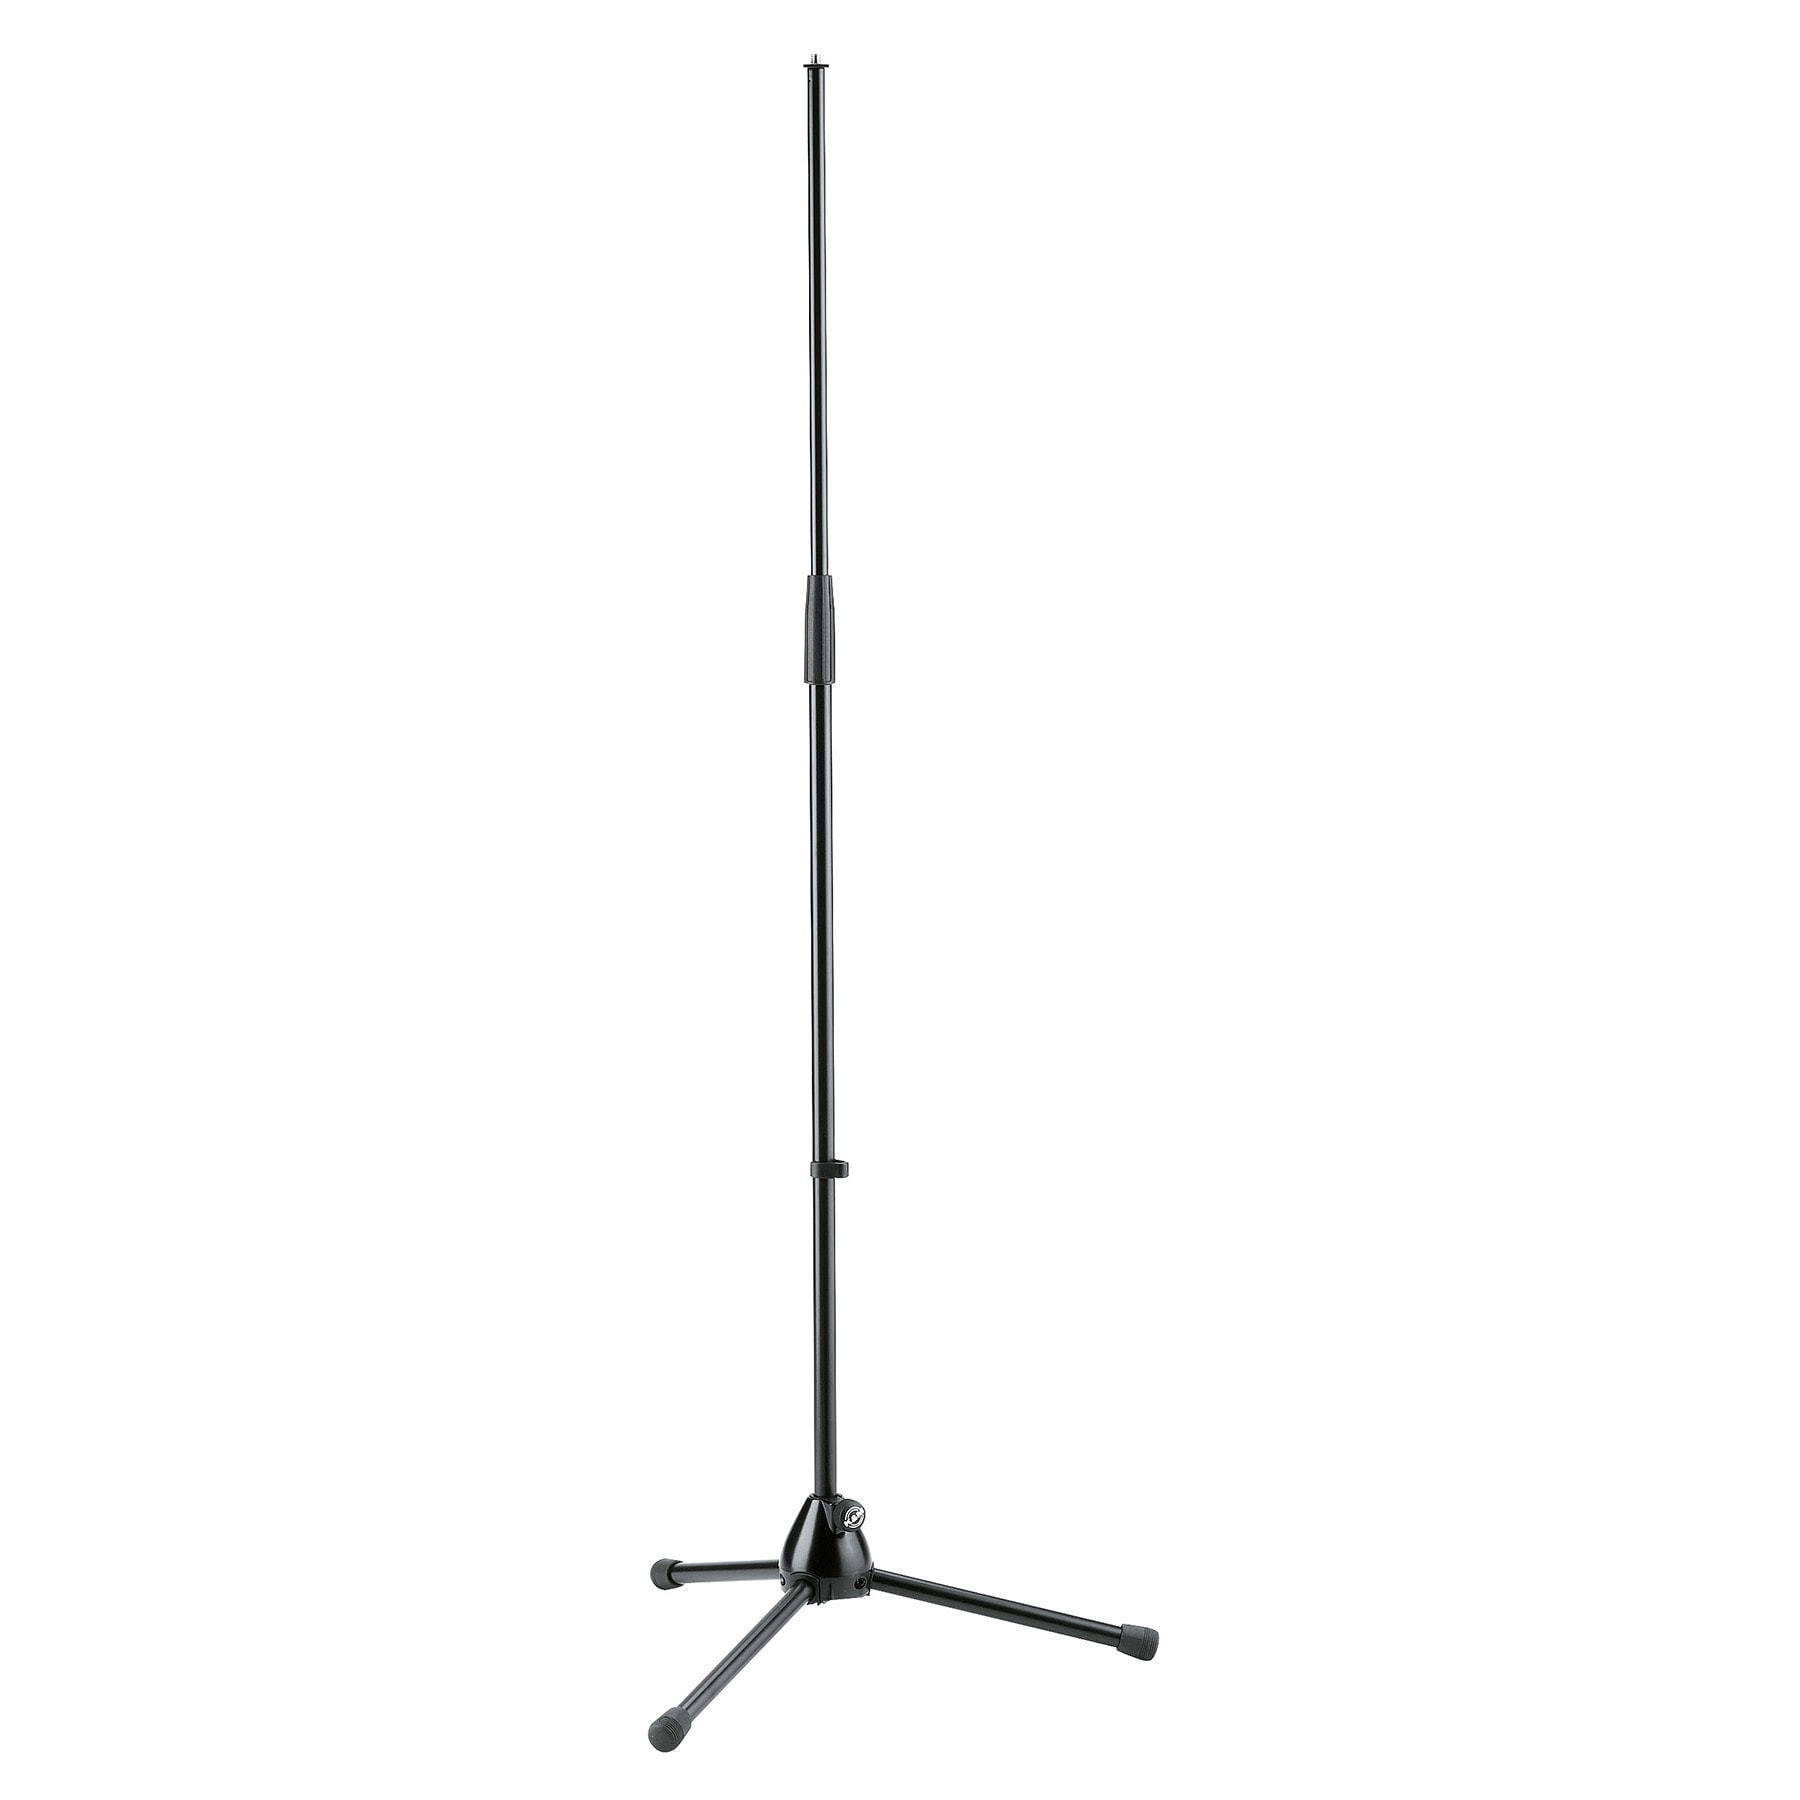 KM201_2 - Microphone stand